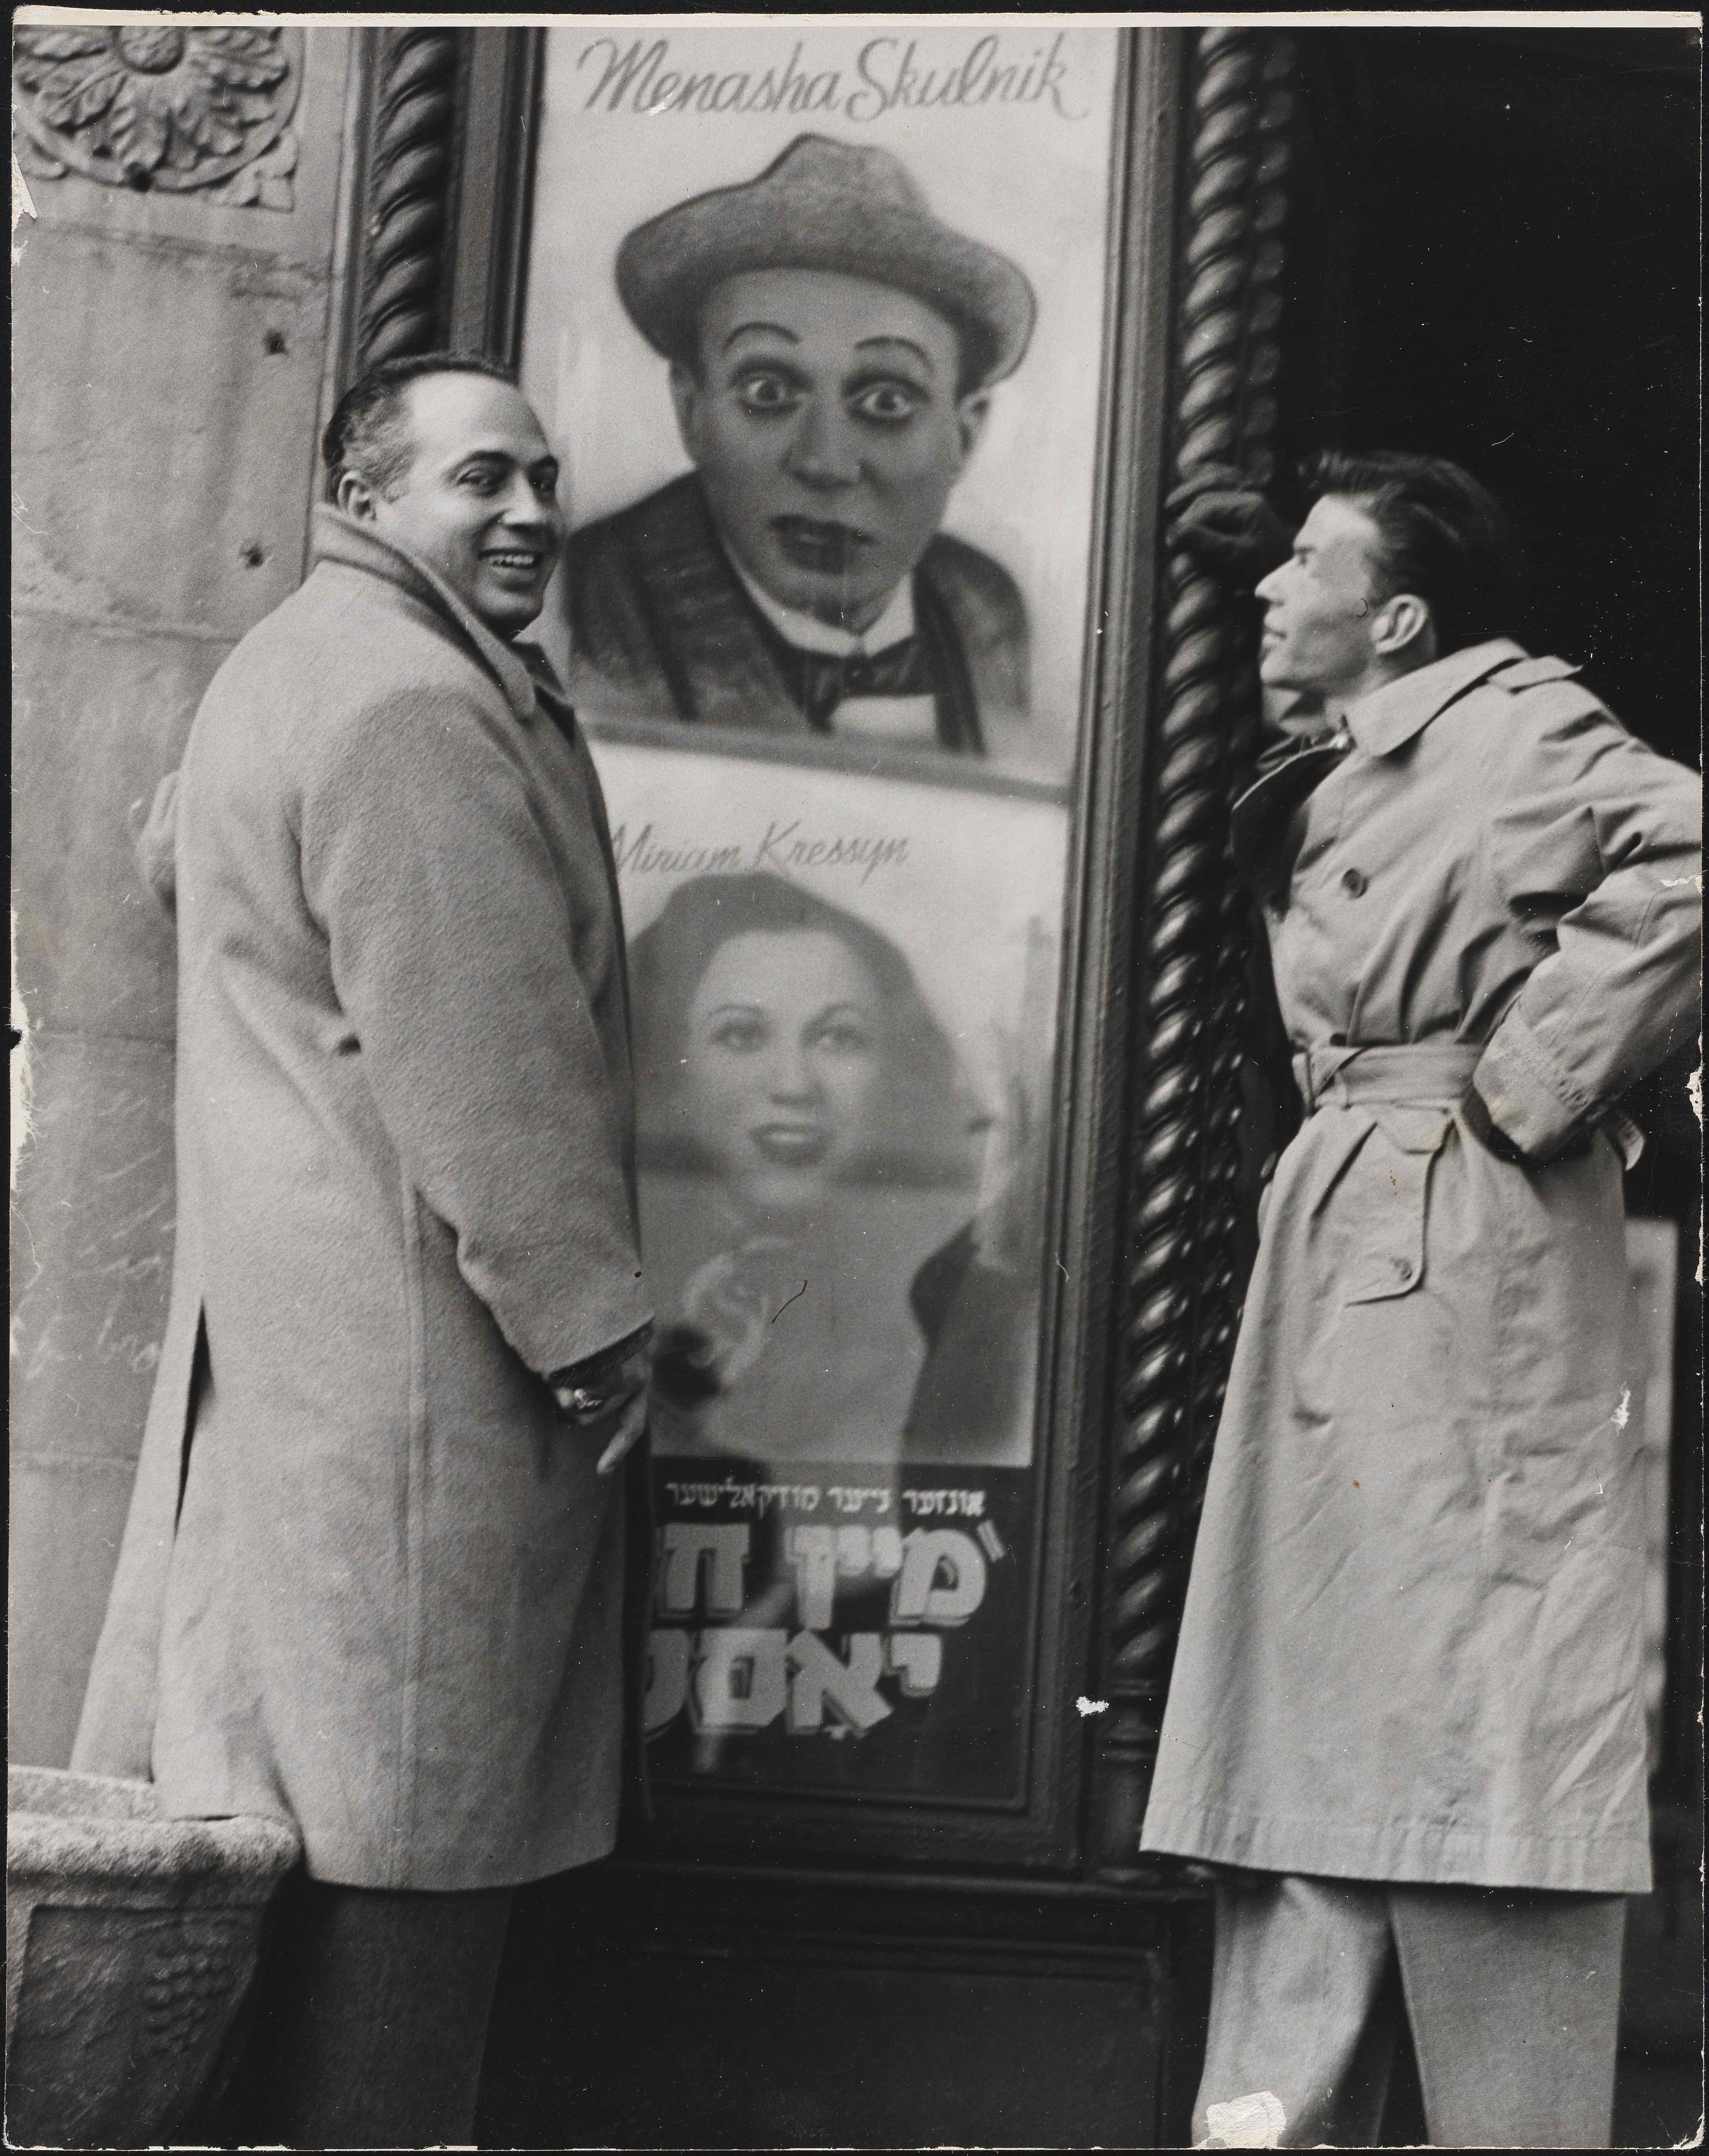 <p>Frank Sinatra (right) and his agent pose with posters of Yiddish stars Menasha Skulnik and Miriam Kressyn outside the Second Avenue Theatre, c. 1943. Museum of the City of New York, Gift of Mrs. Menasha Skulnik,&nbsp;76.55</p>